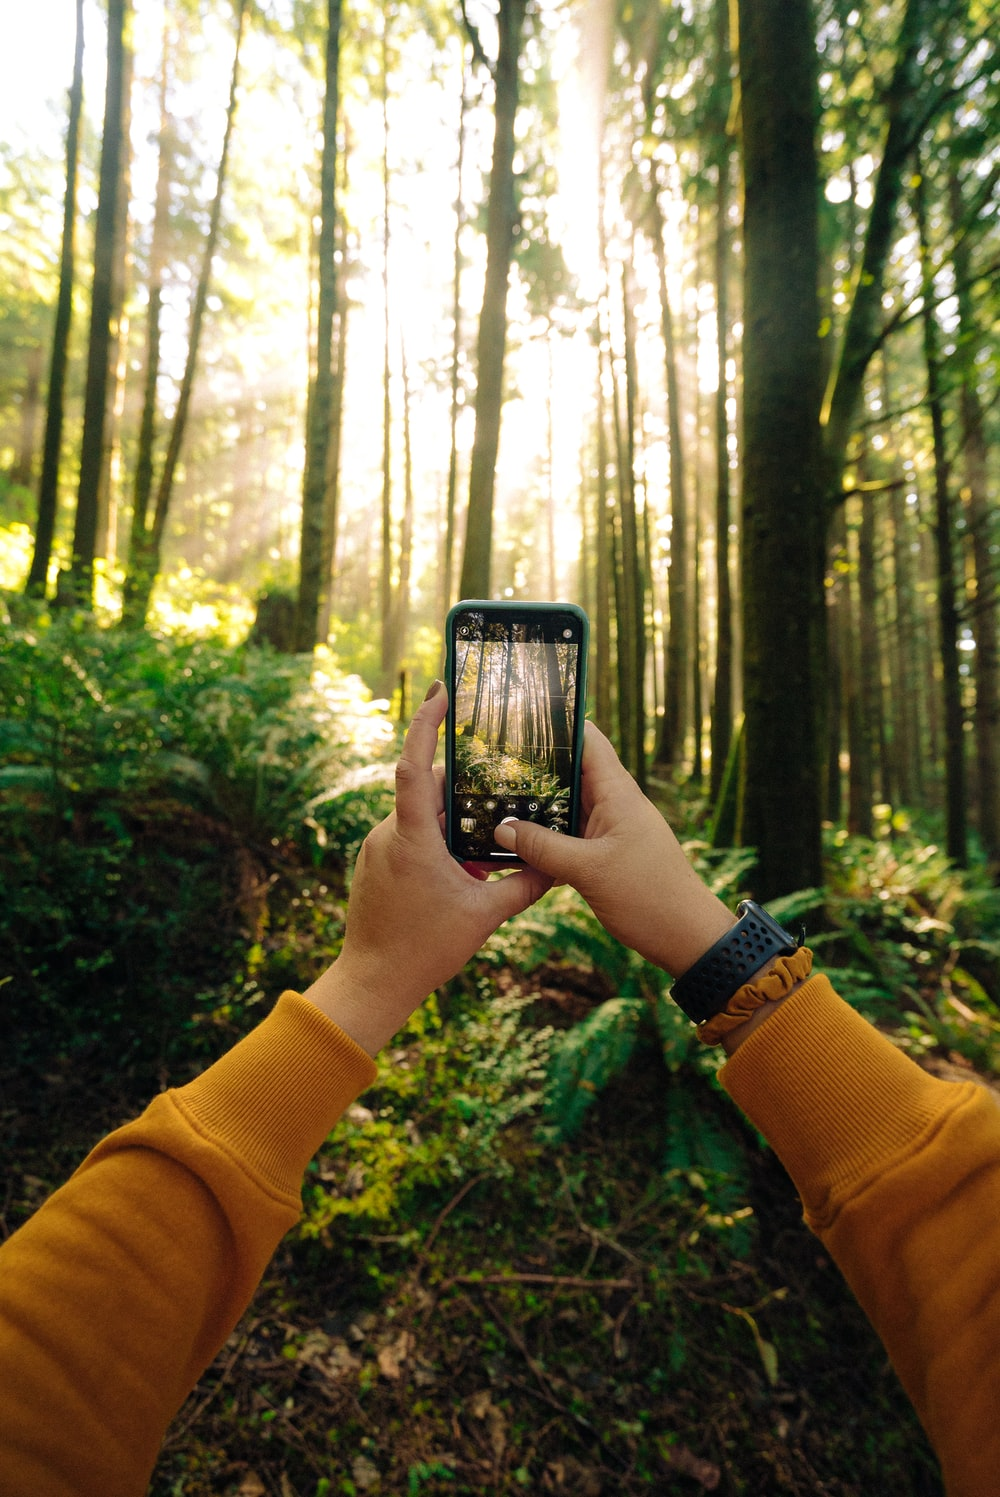 person holding black smartphone taking photo of green trees during daytime